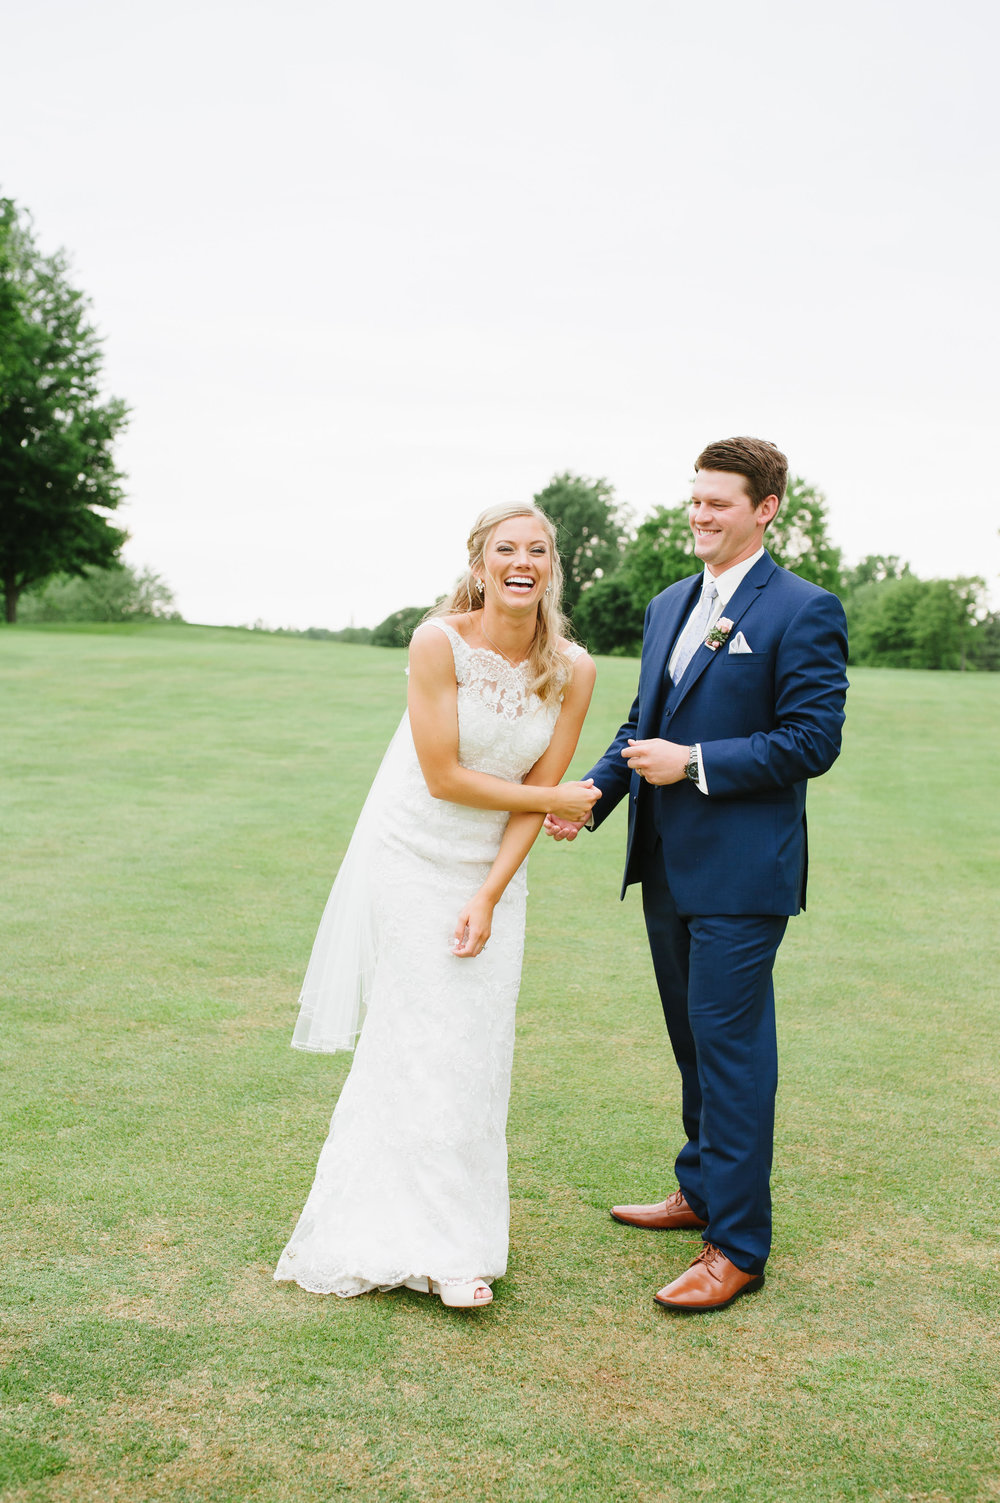 - A lifestyle photographer authentically capturing weddings and couples